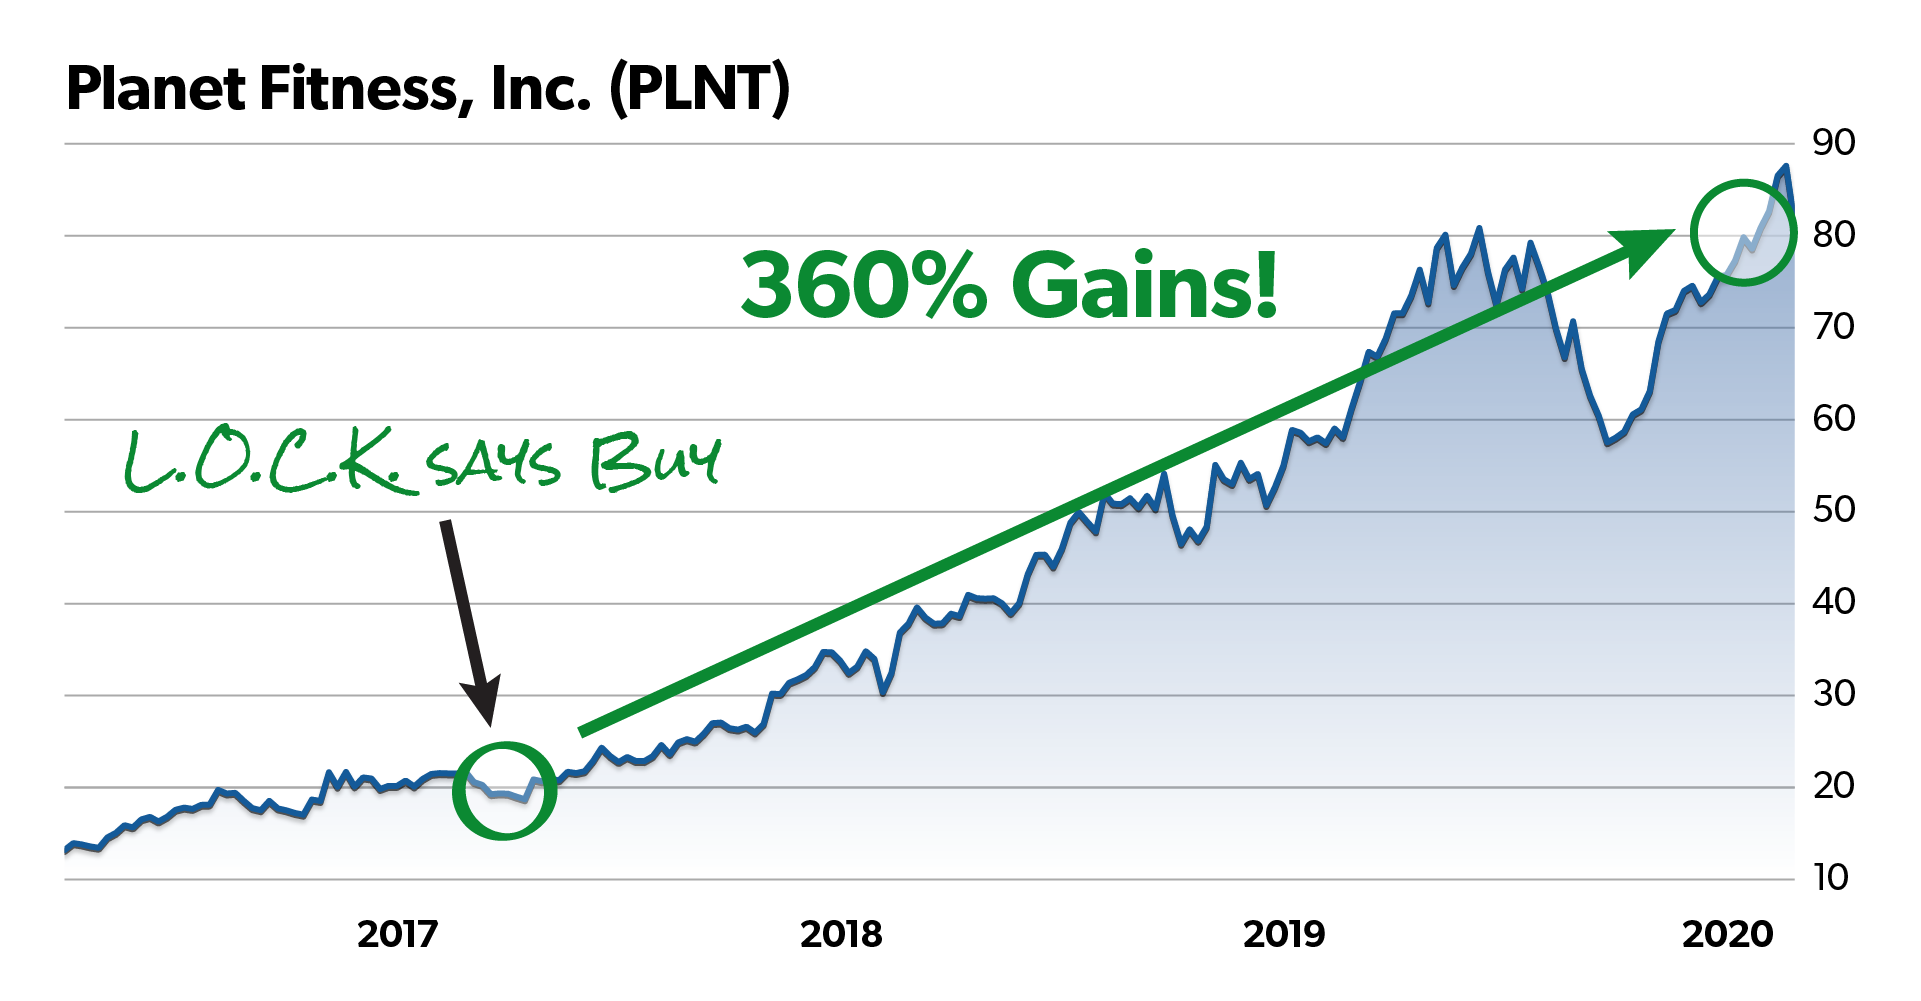 Planet fitness chart with red circle around recommendation date. Caption with arrow pointing to circle should read: L.O.C.K. says Buy. 360% gains!